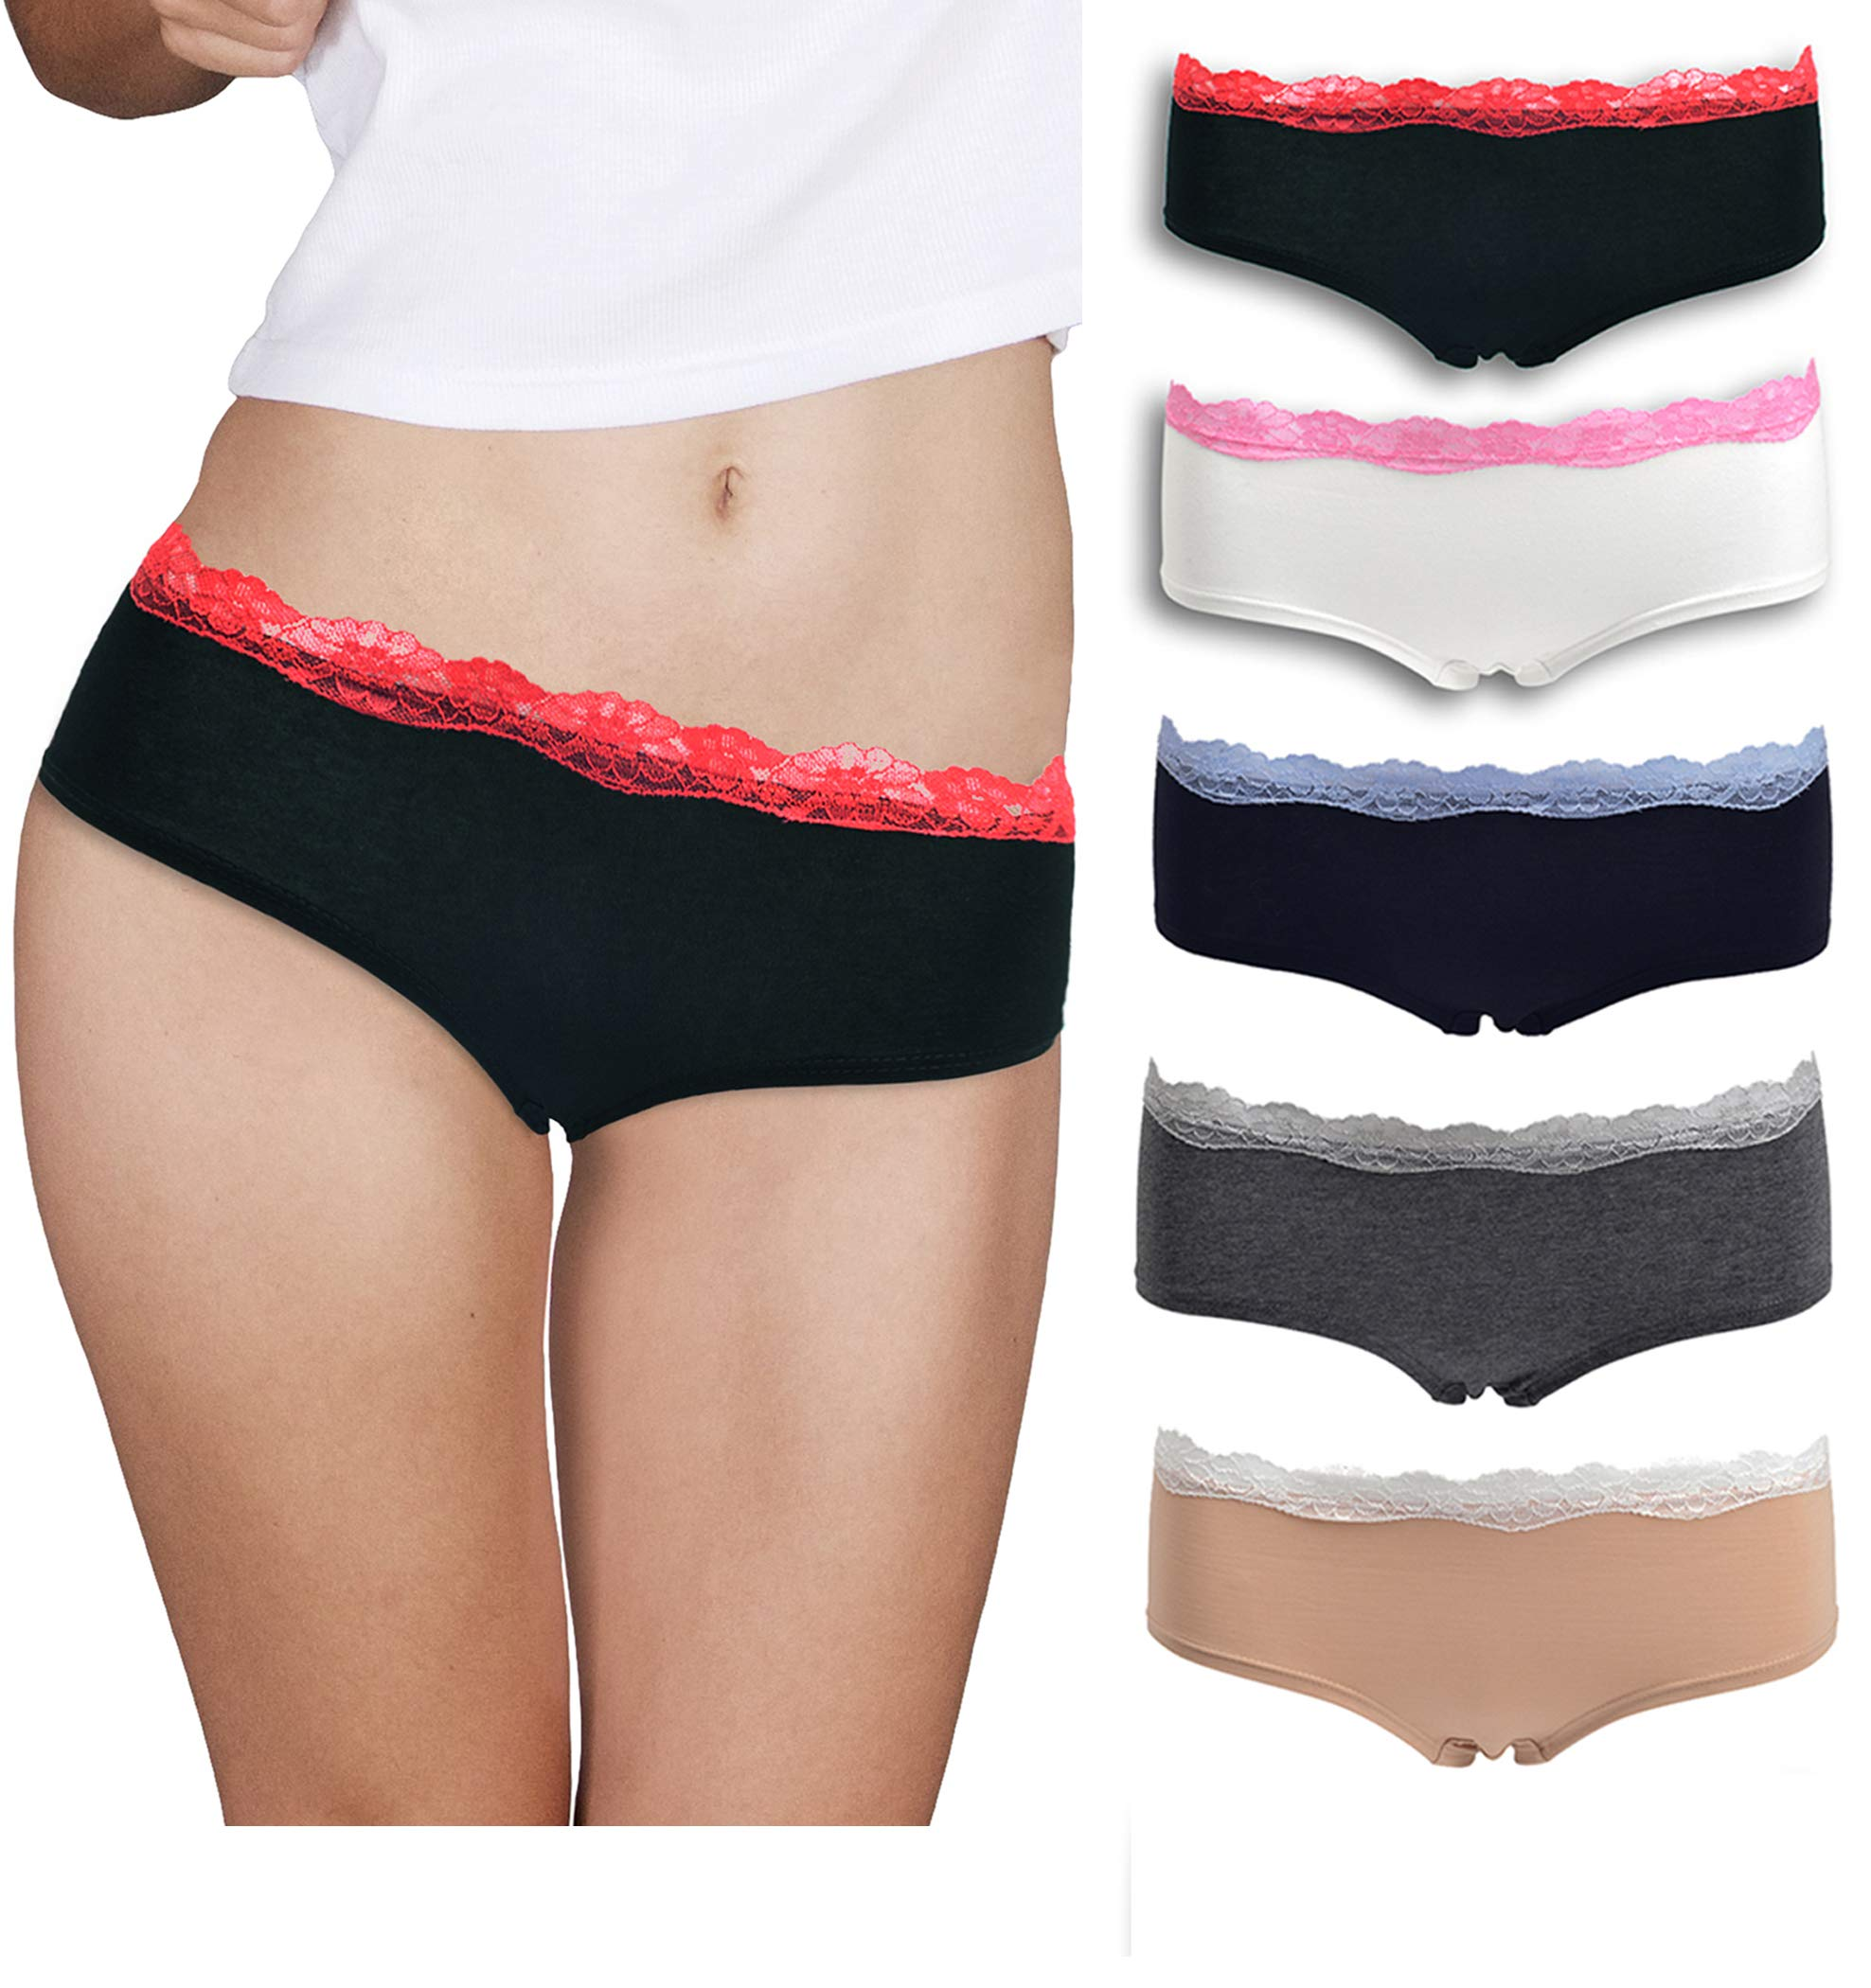 Womens Lace Underwear Hipster Panties Cotton/Spandex - 5 Pack Colors and Patterns May Vary …